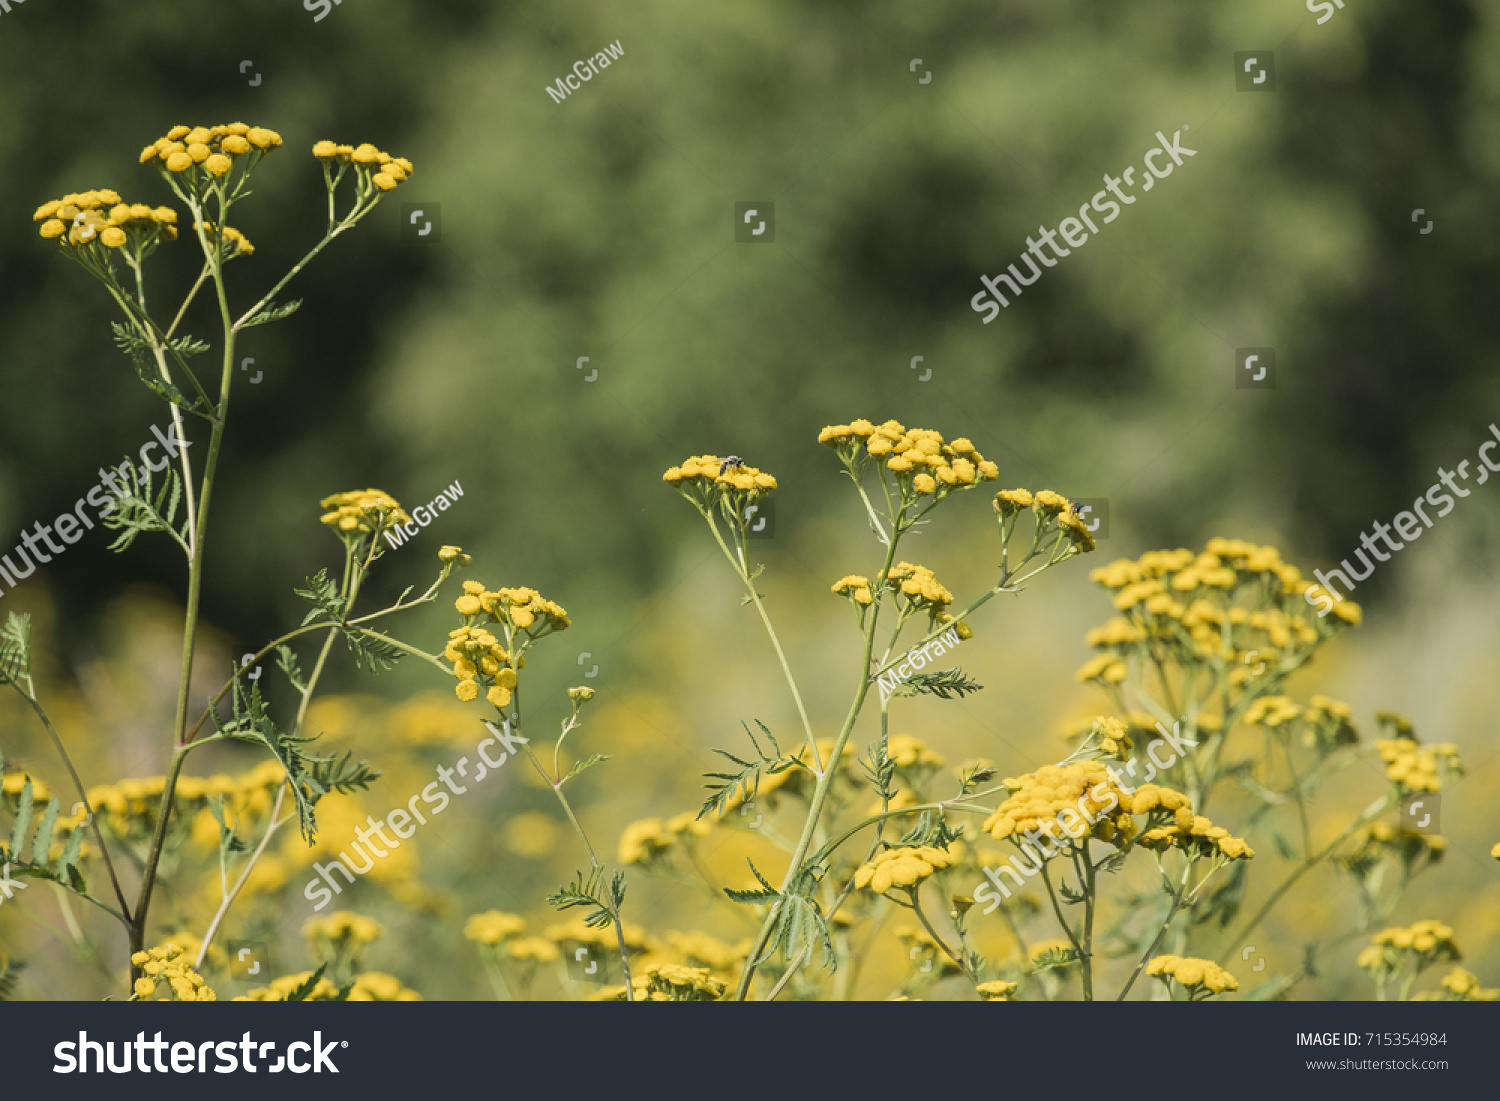 Medicinal herbs yellow flowers tansy on stock photo edit now medicinal herbs yellow flowers tansy on a blurred background tanacetum vulgare mightylinksfo